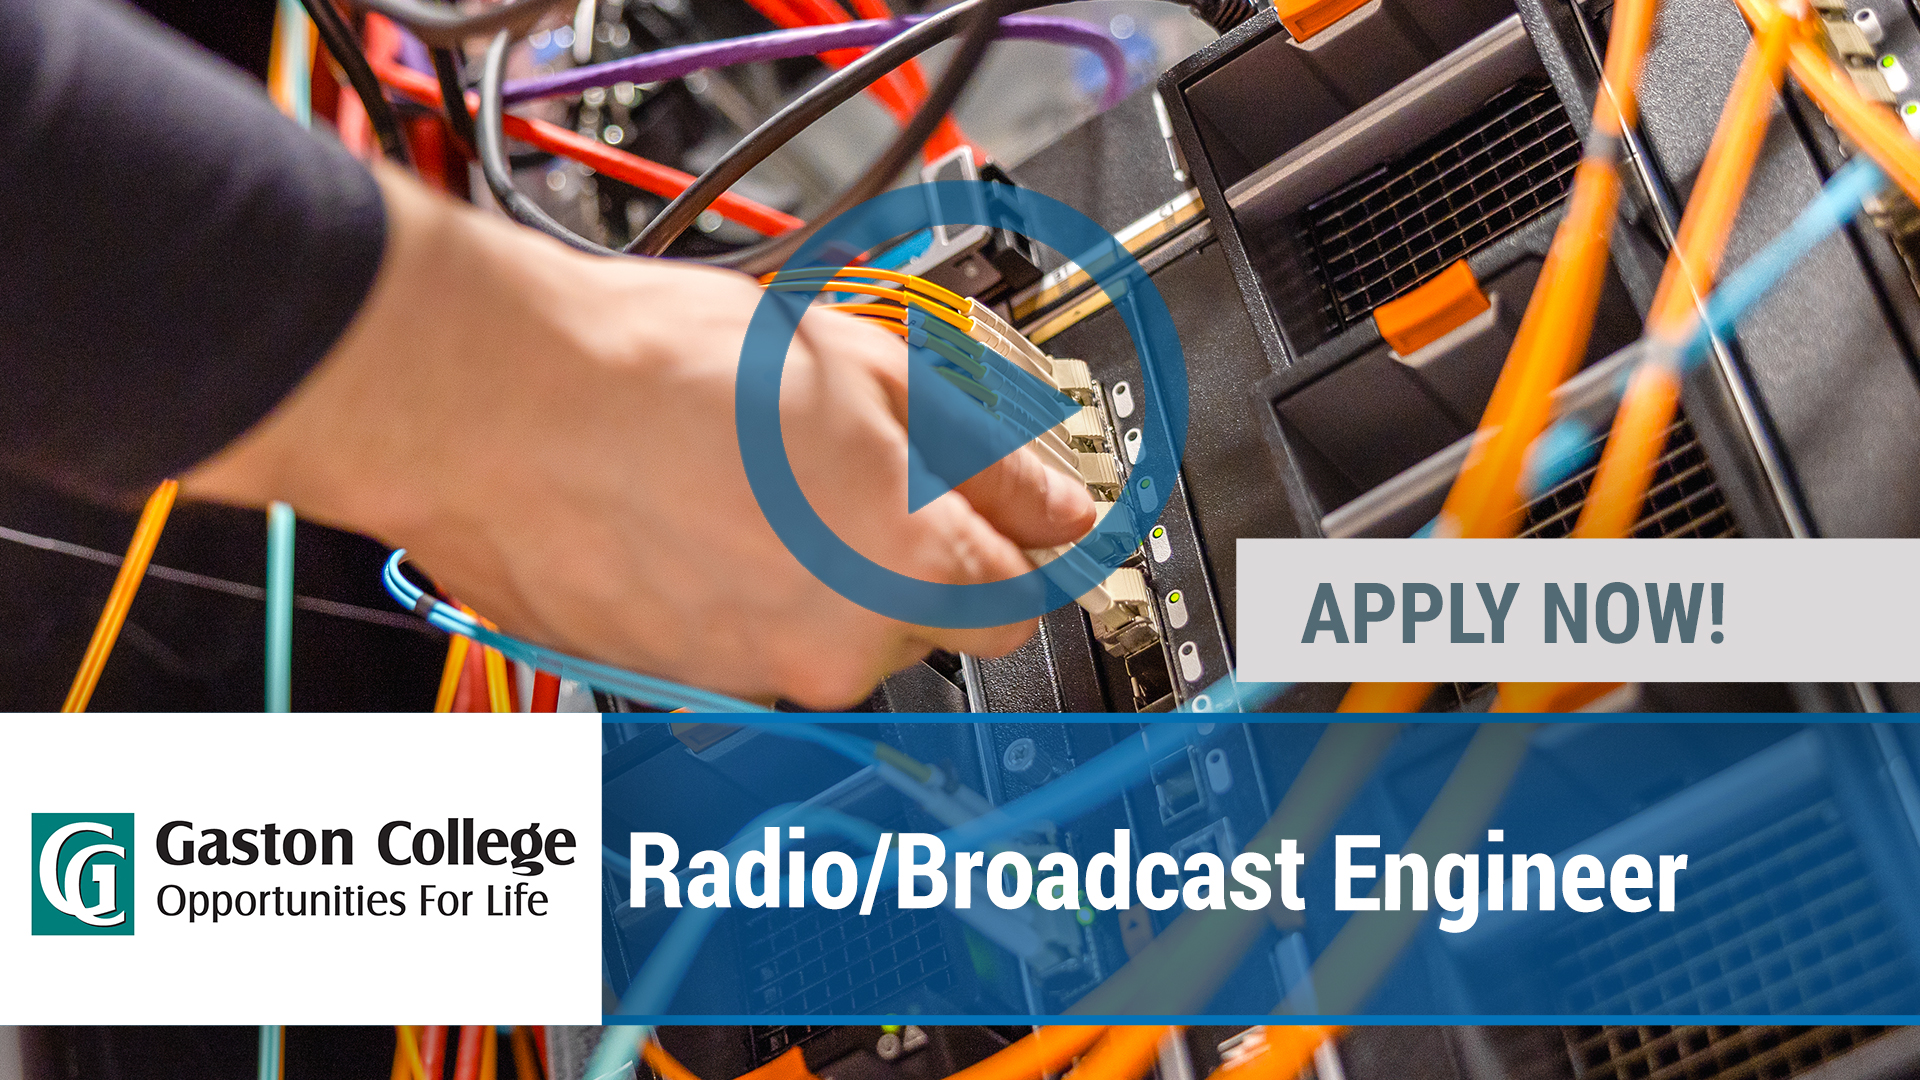 Watch our careers video for available job opening Radio_Broadcast Engineer in Charlotte, NC